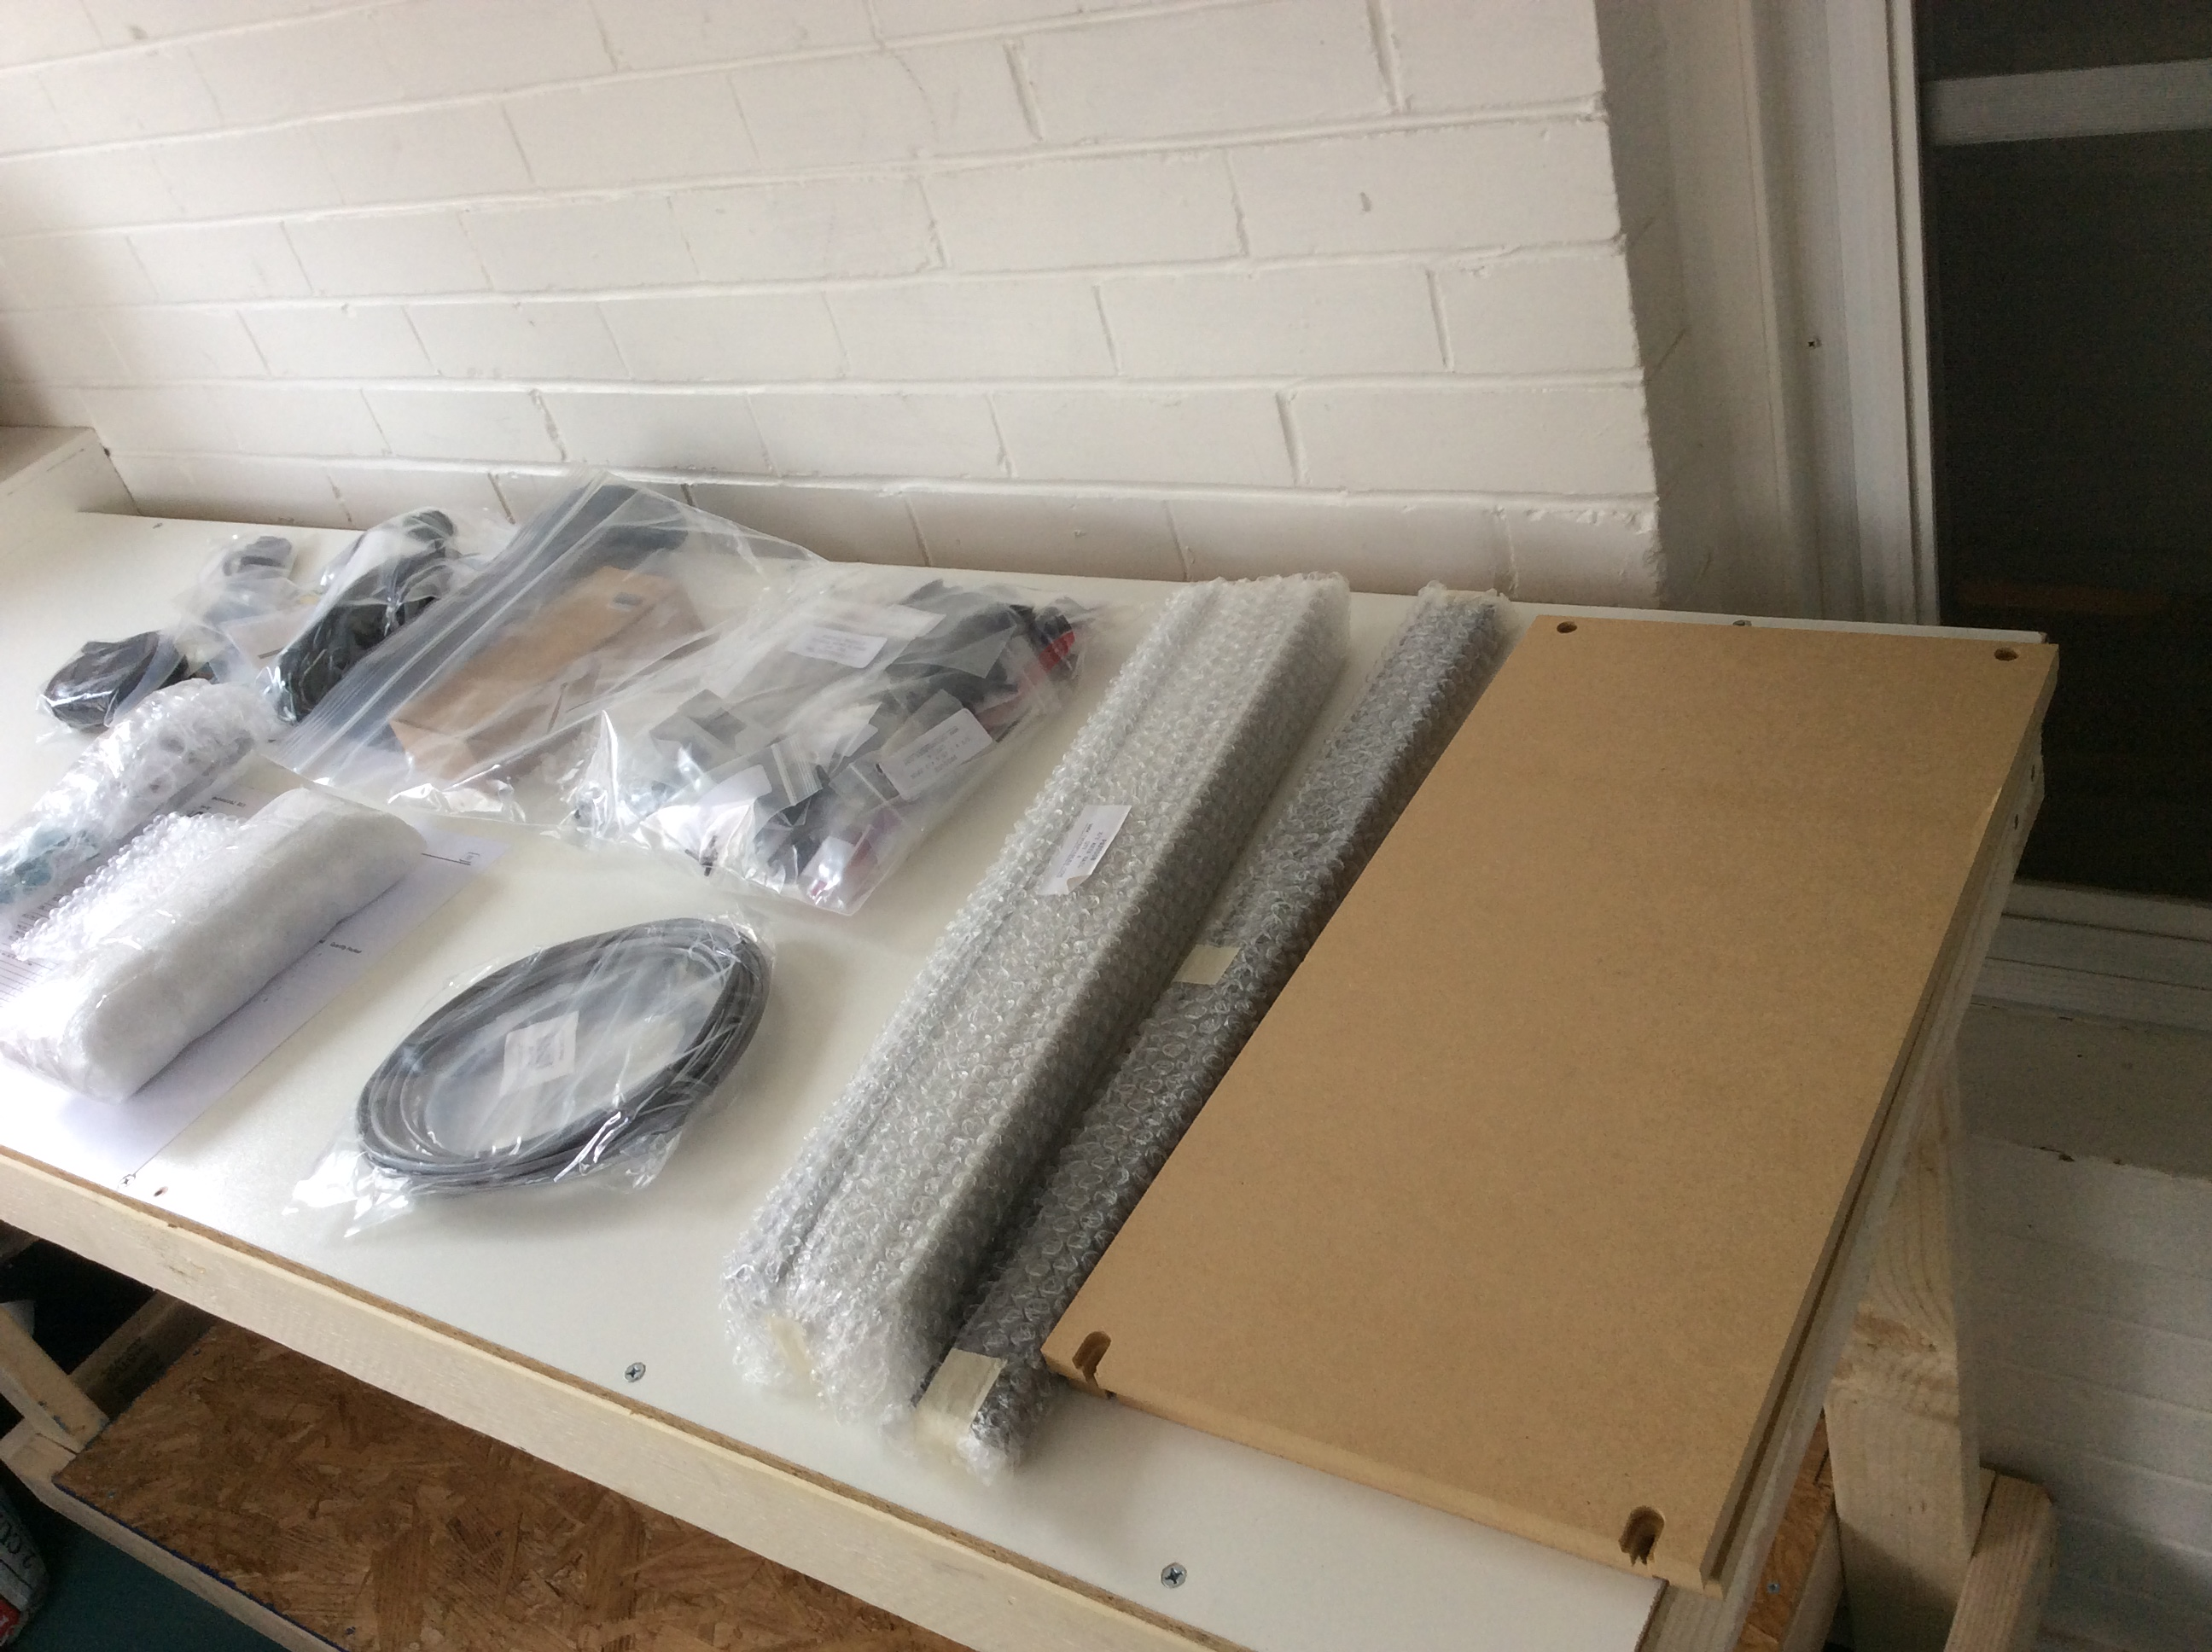 Parts for the CNC router